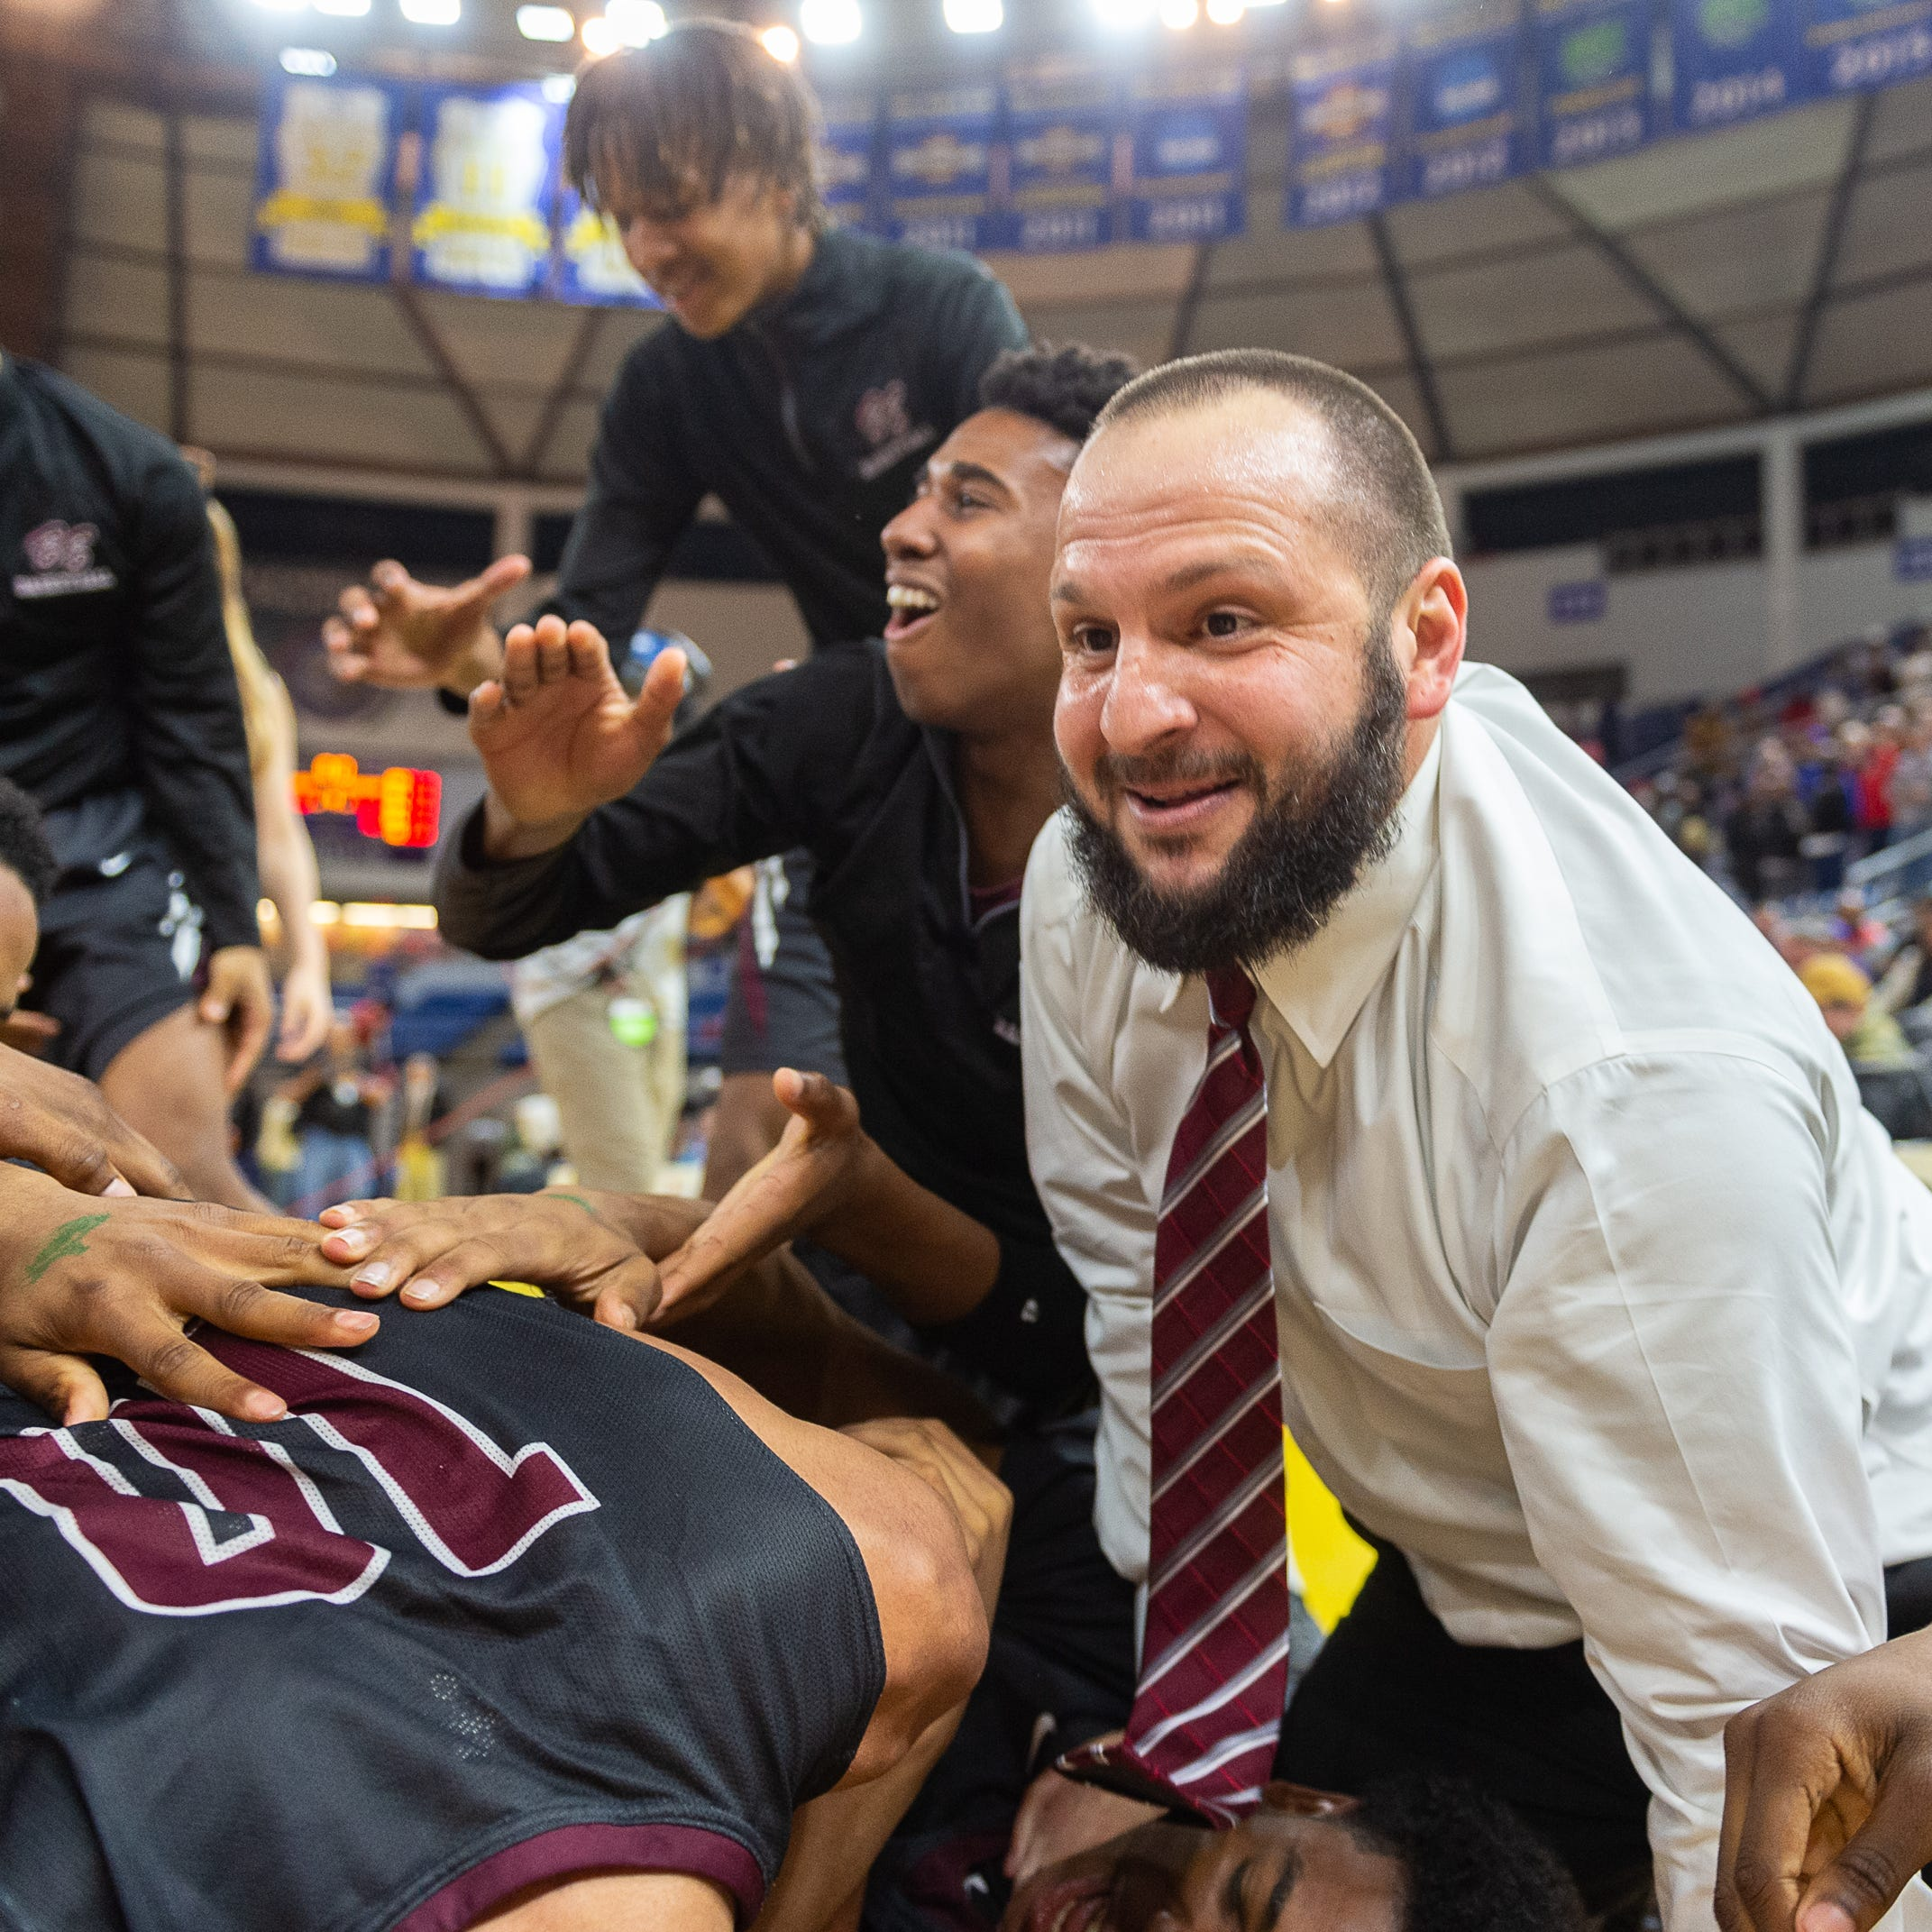 Chad Pourciau named Coach of the Year to lead Class 4A All-State team